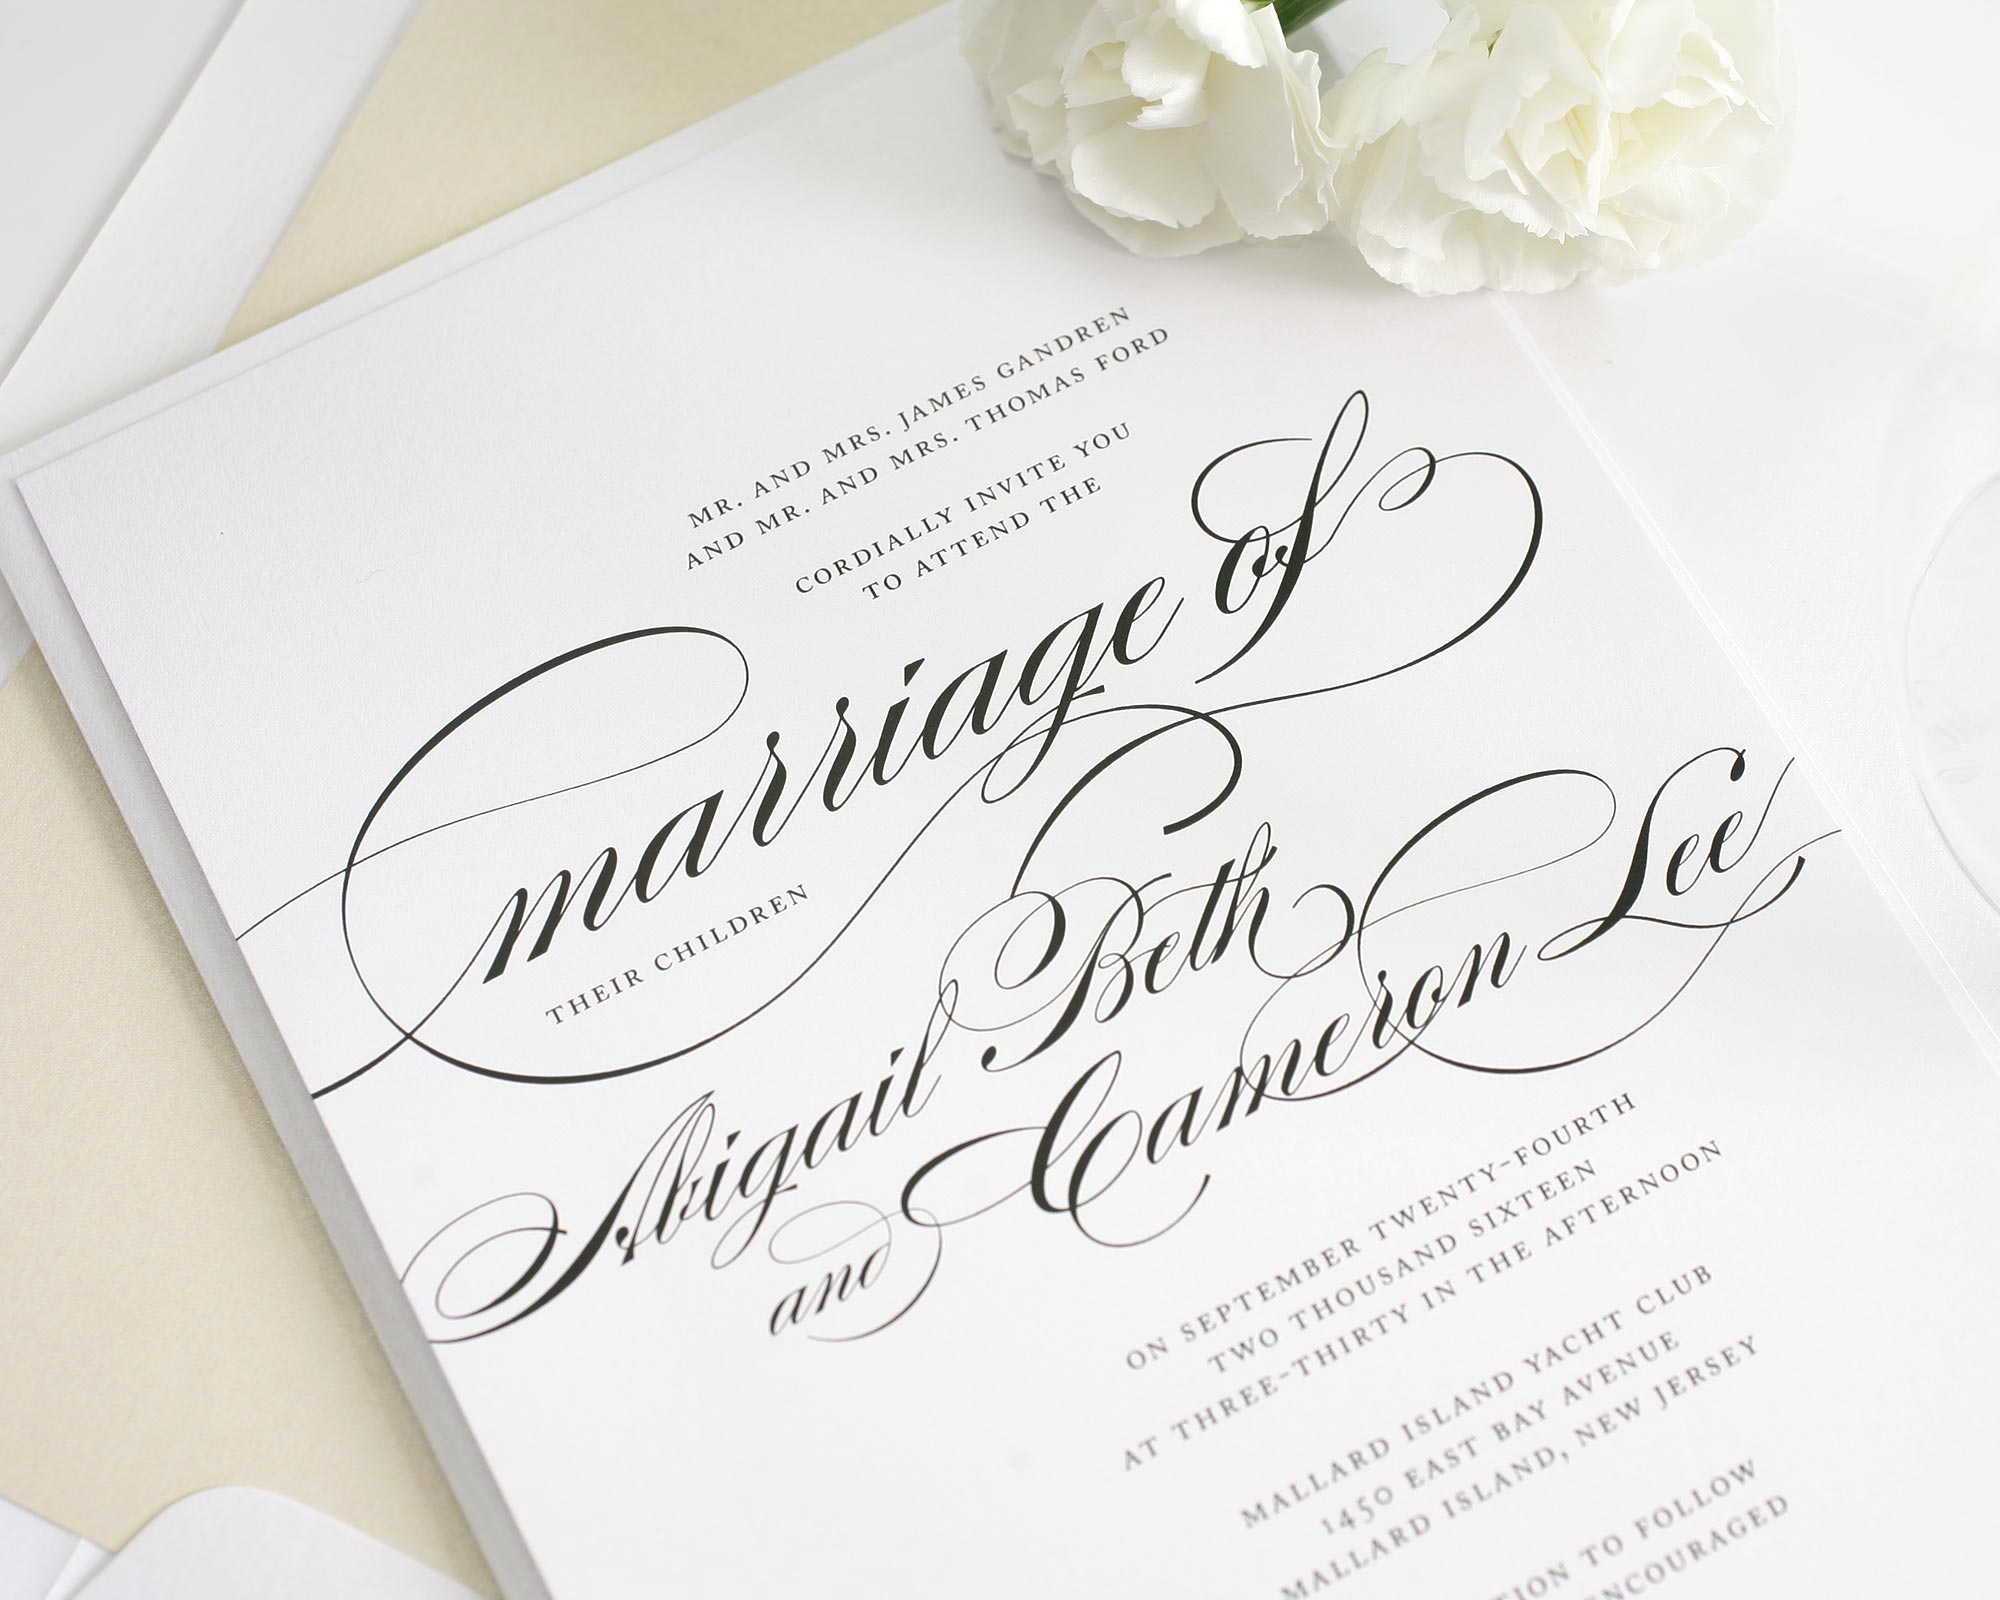 champagne wedding invitations - Amazing Wedding Invitations